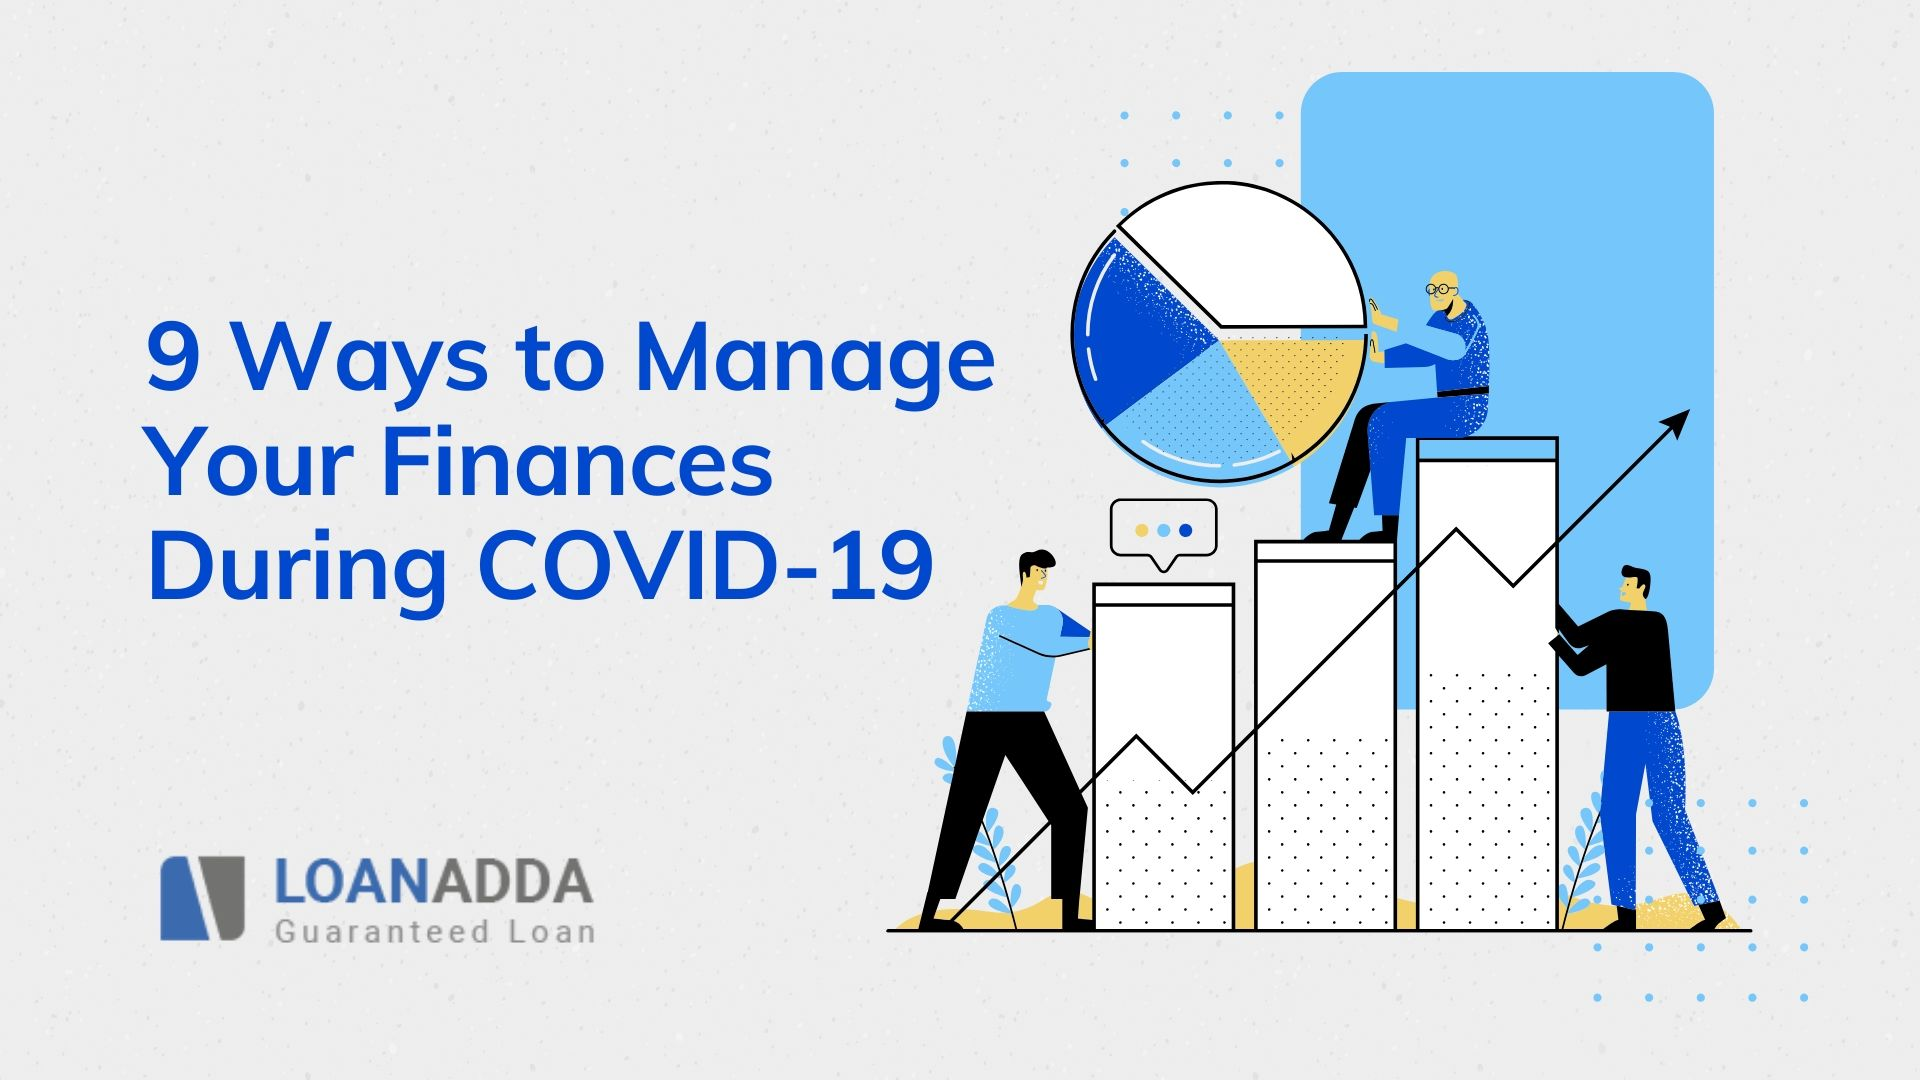 9 Ways to Manage Your Finances During COVID-19